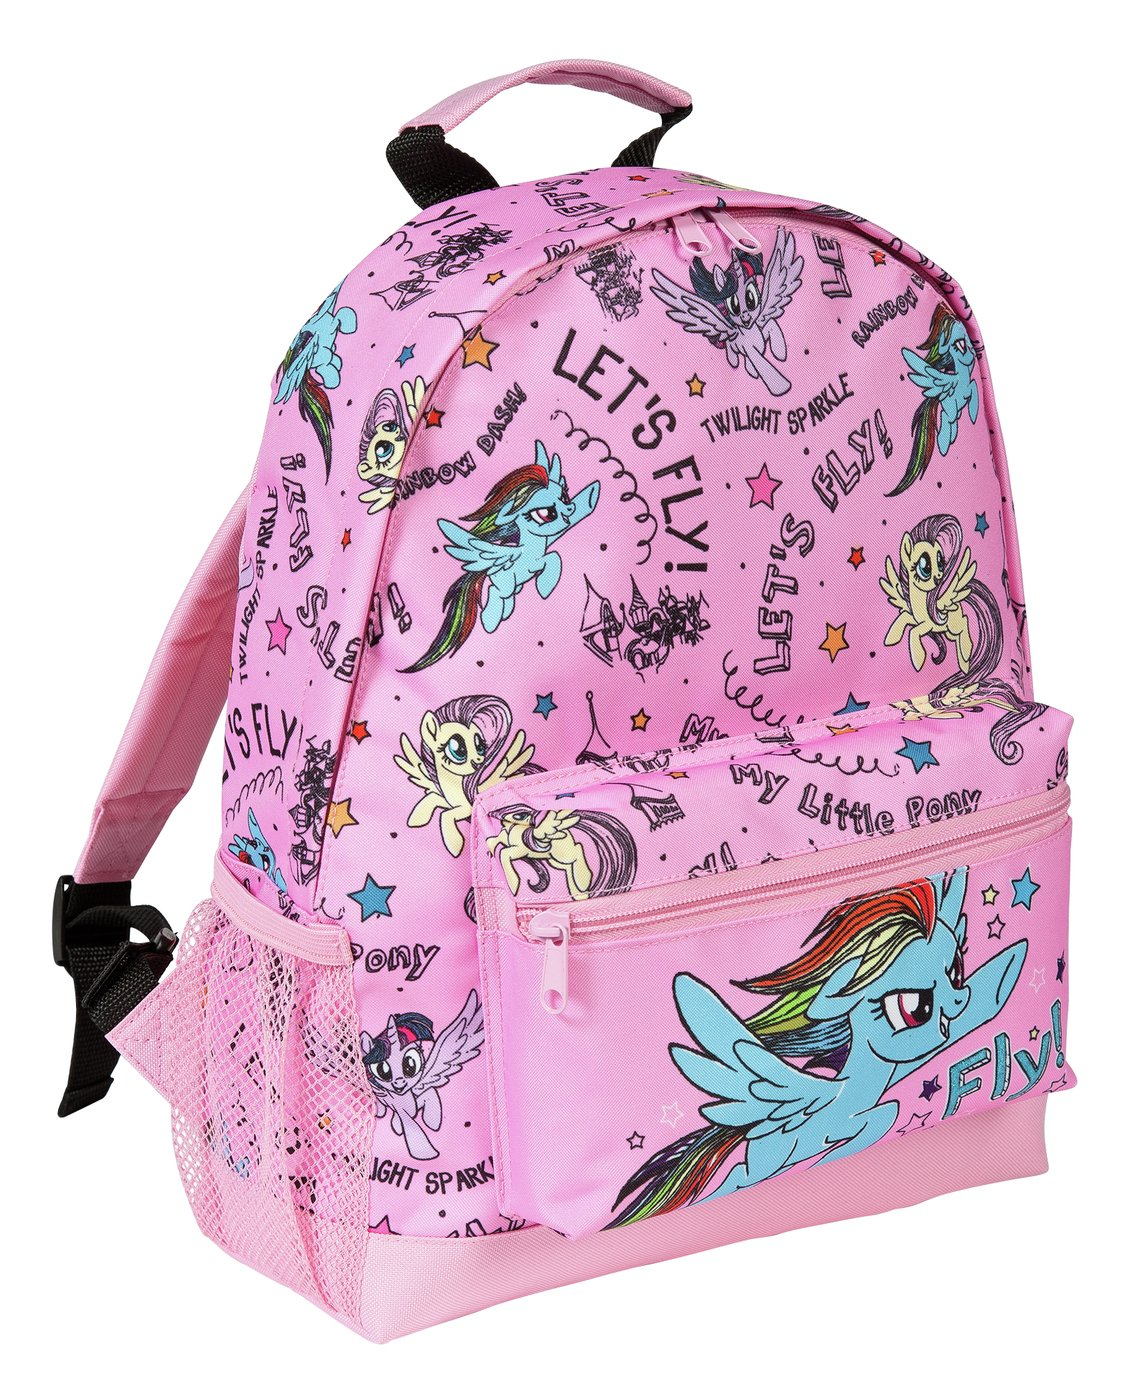 My Little Pony Backpack - Pink